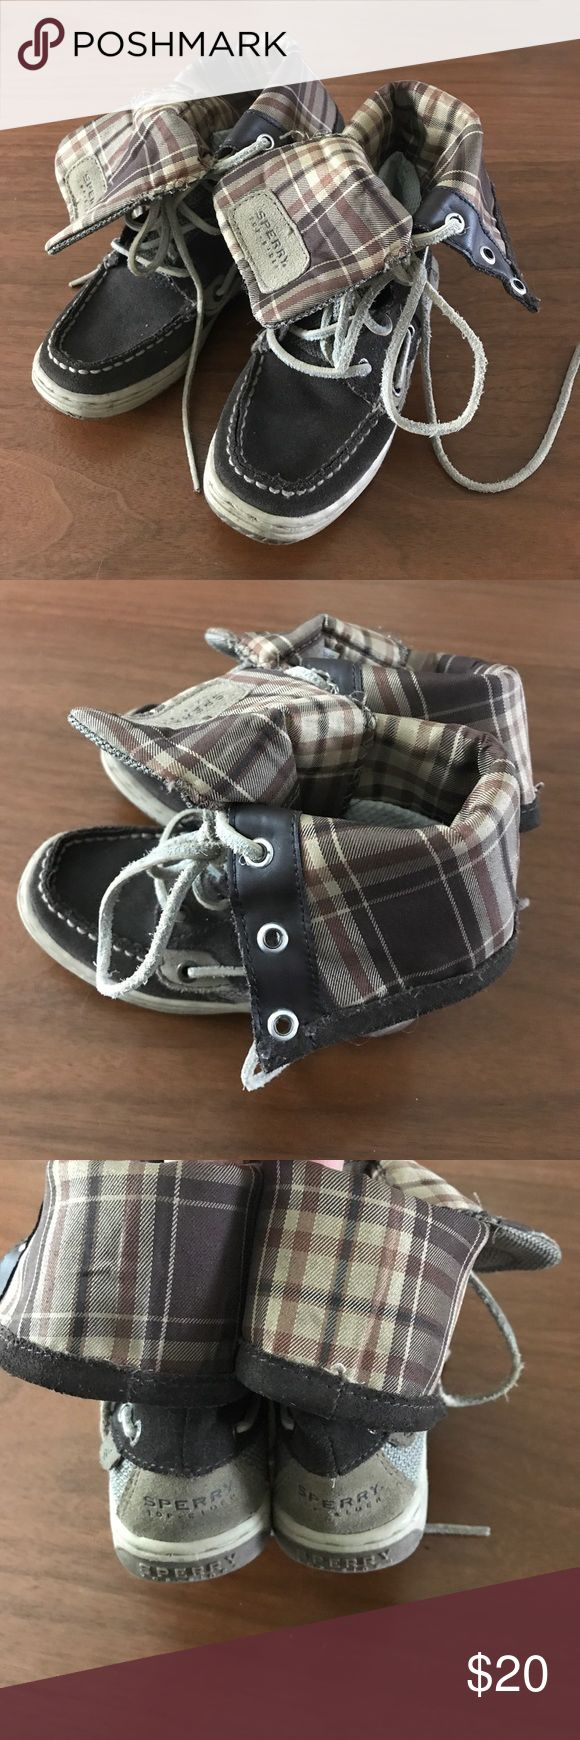 Boys Speedy top sides boots Cute boots, good used condition.  Bundle for a discount Sperry Top-Sider Shoes Boots